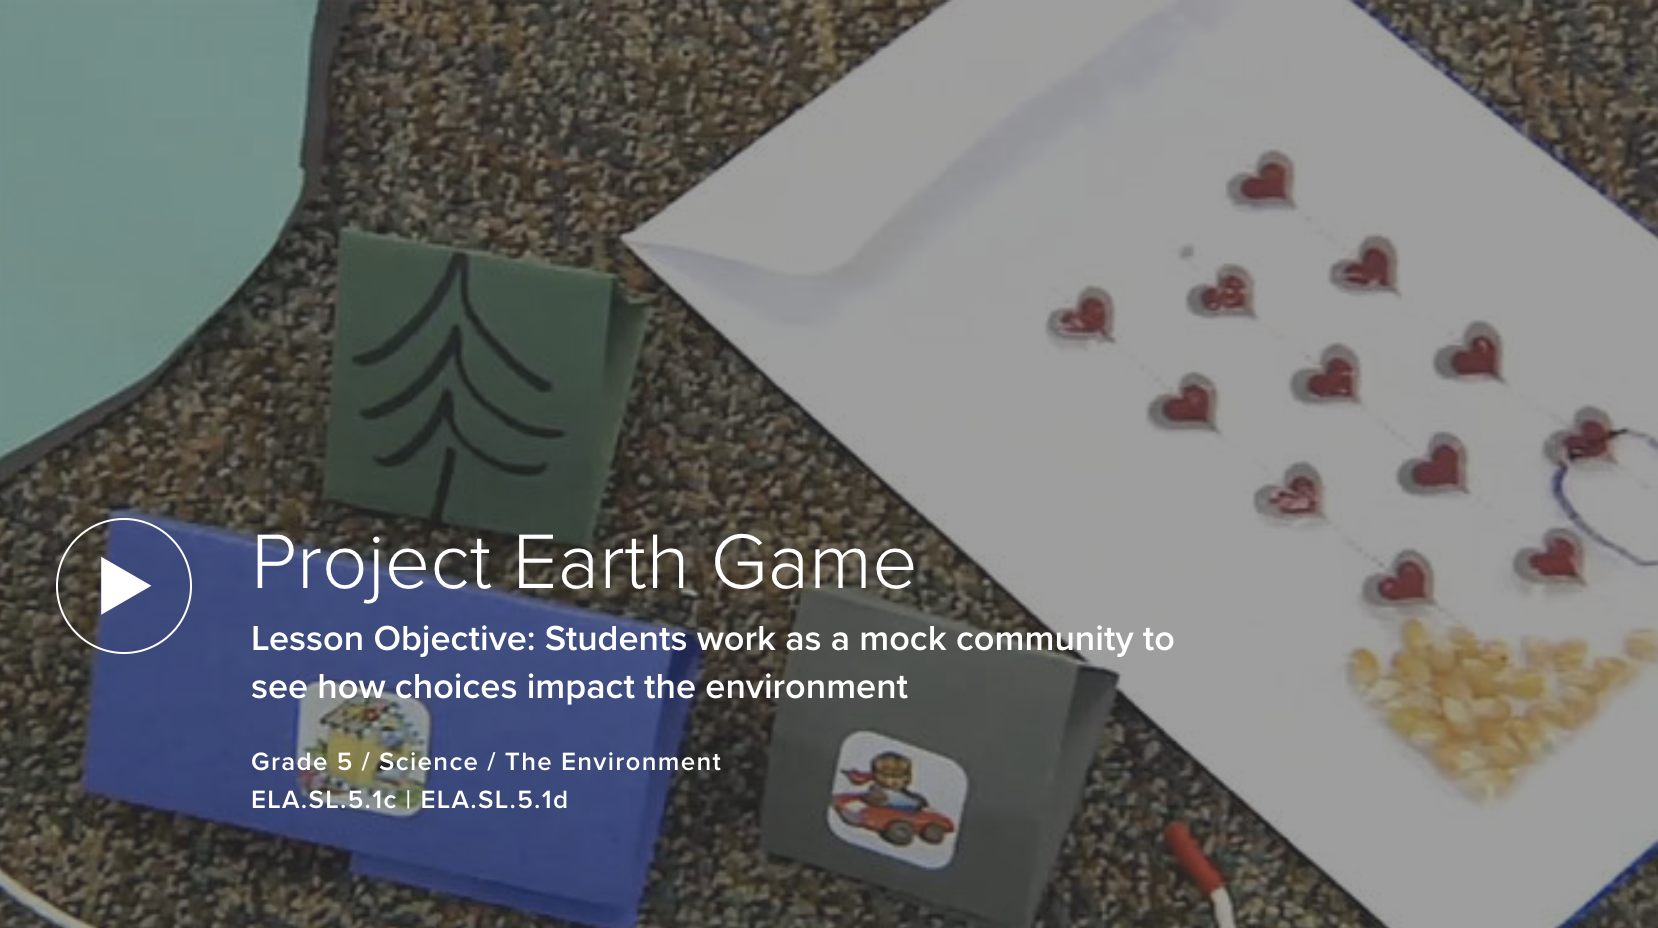 VIDEO: Project Earth Game